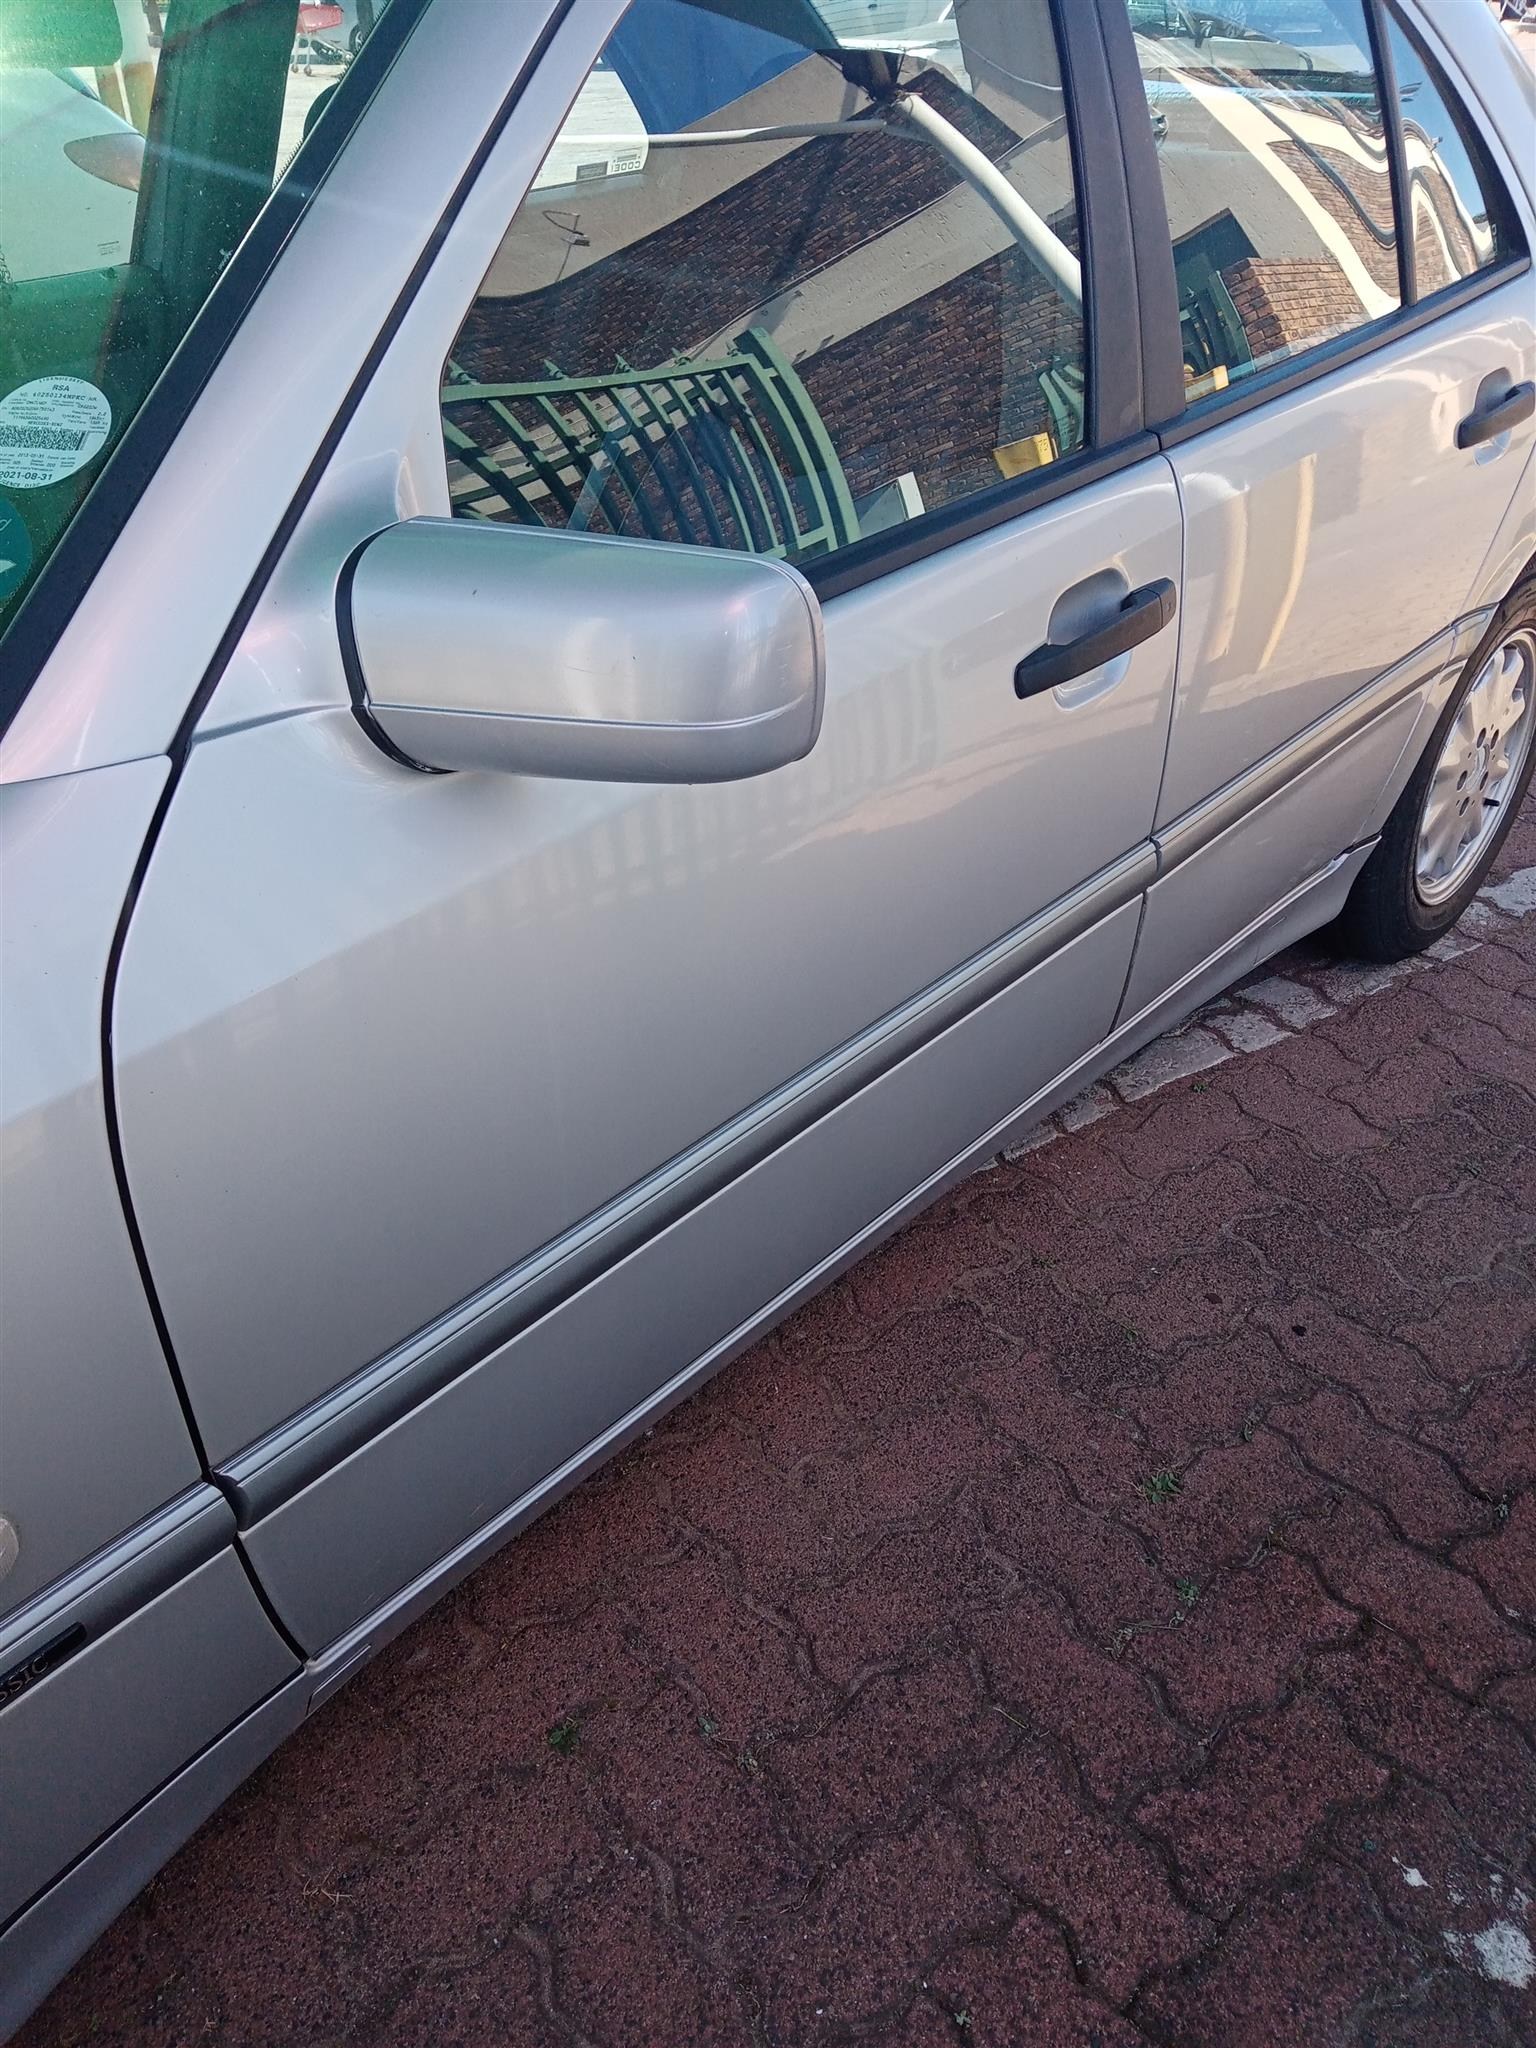 Mercedes w202 1998 very good condition, service history, well looked after, reli